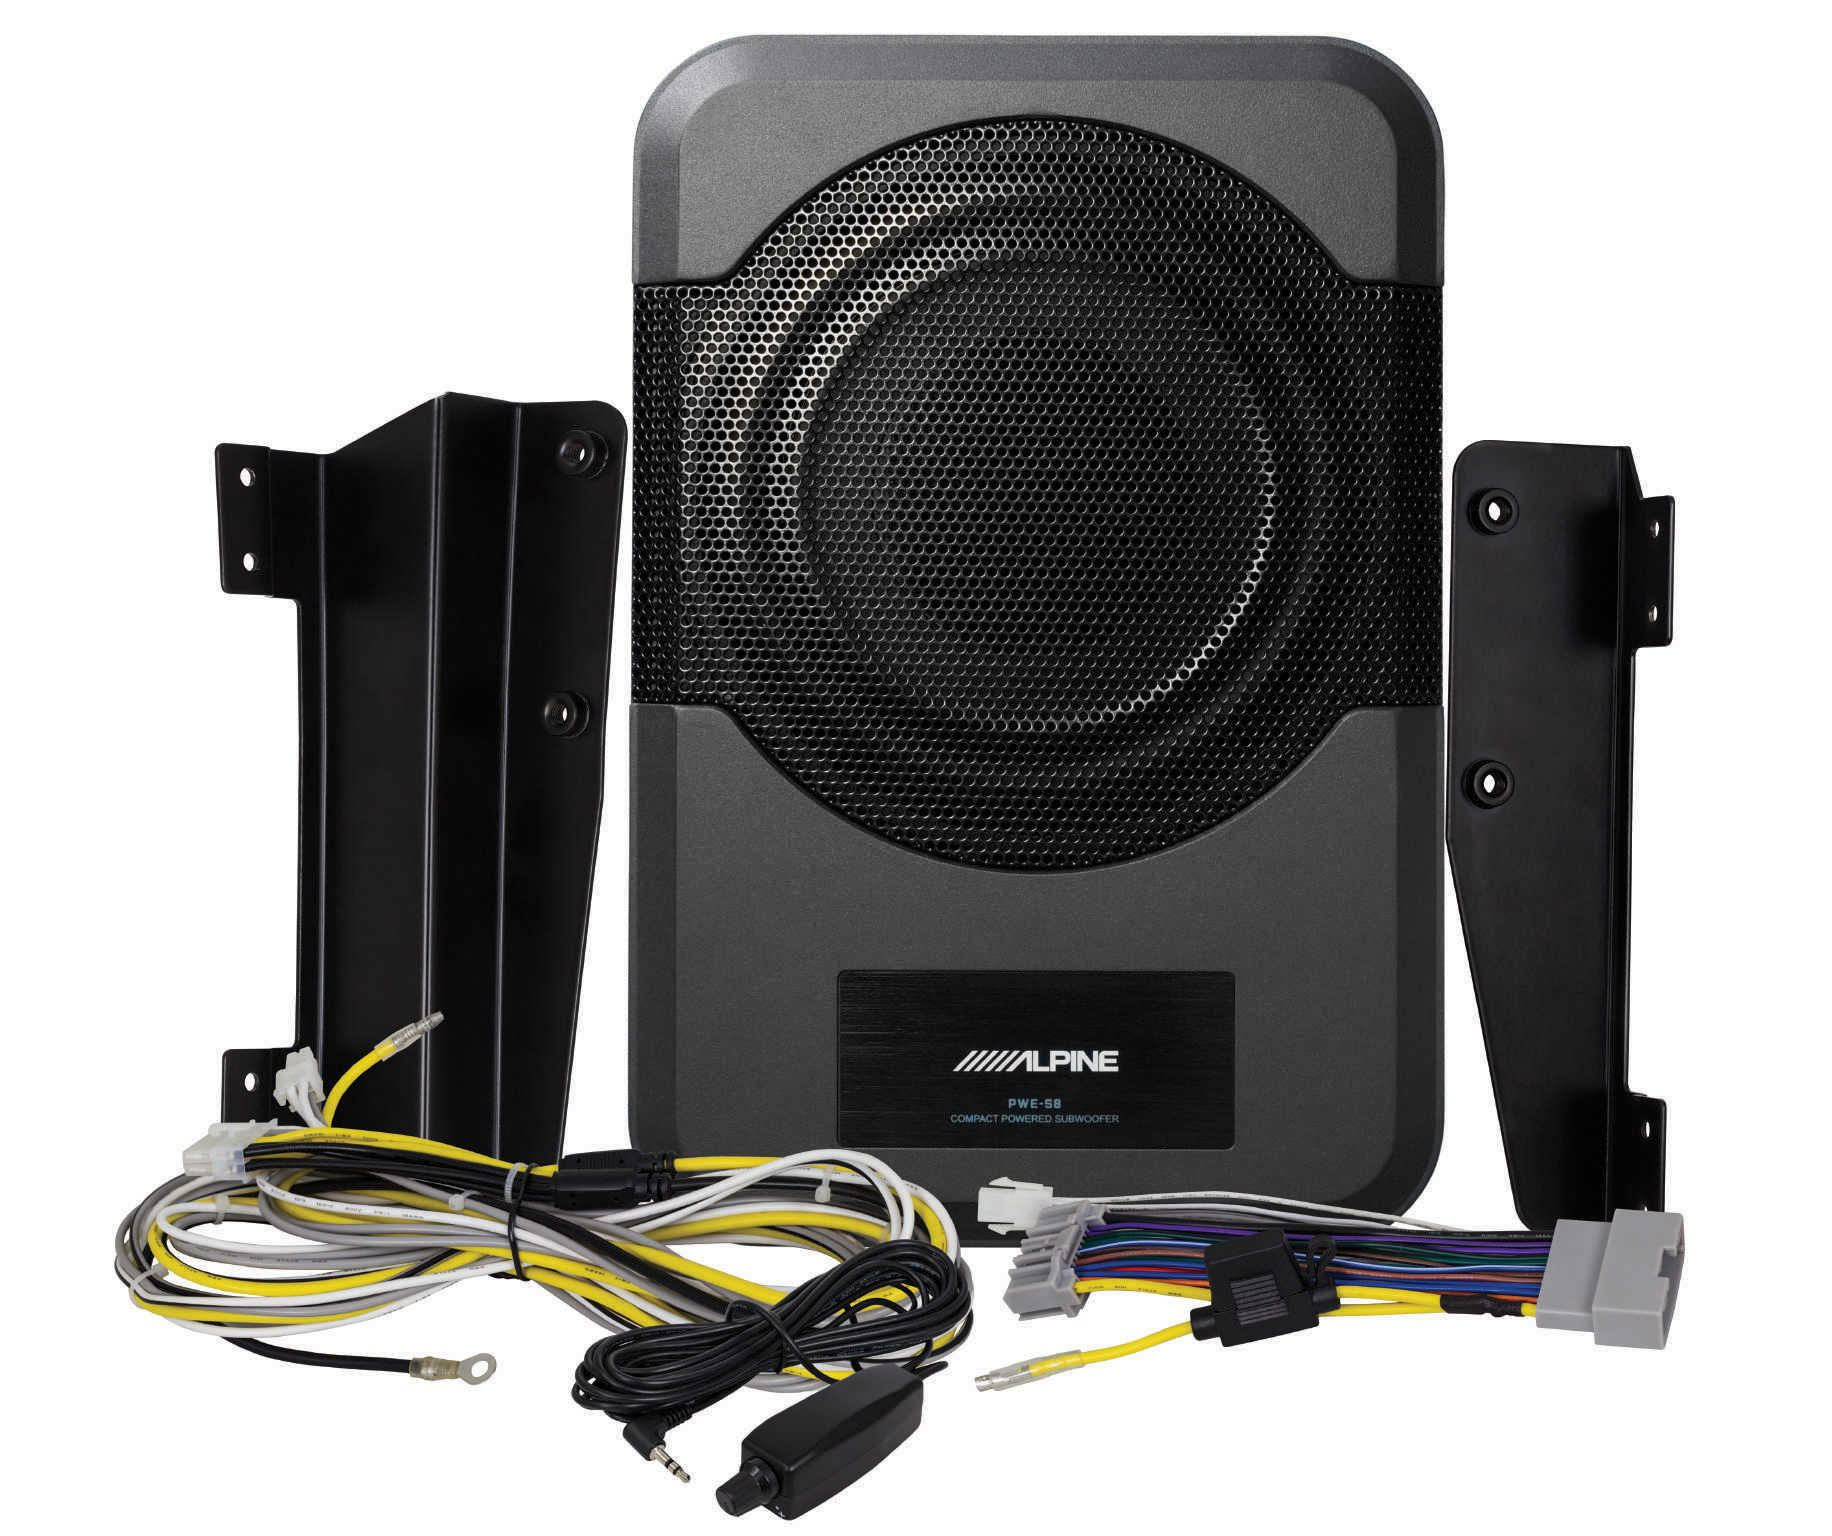 Alpine Pwe S8 Wra 8 Inch Compact Powered Subwoofer System For 11 17 Jeep Wrangler Jk Upgrade Unlimited Quadratec